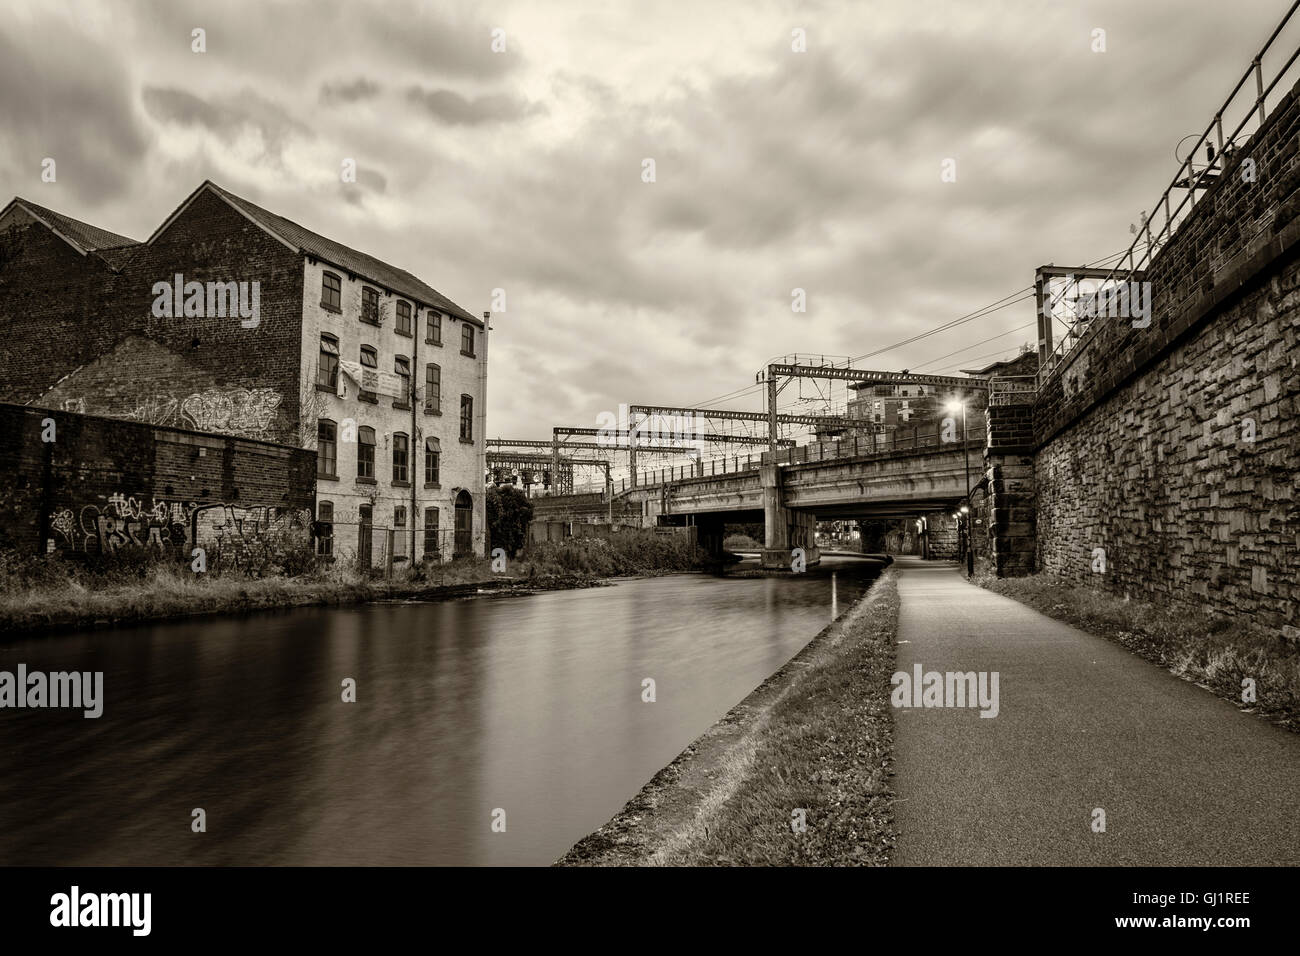 Dusk shot of the River Aire in Leeds City Centre with the train tracks in the background - Stock Image